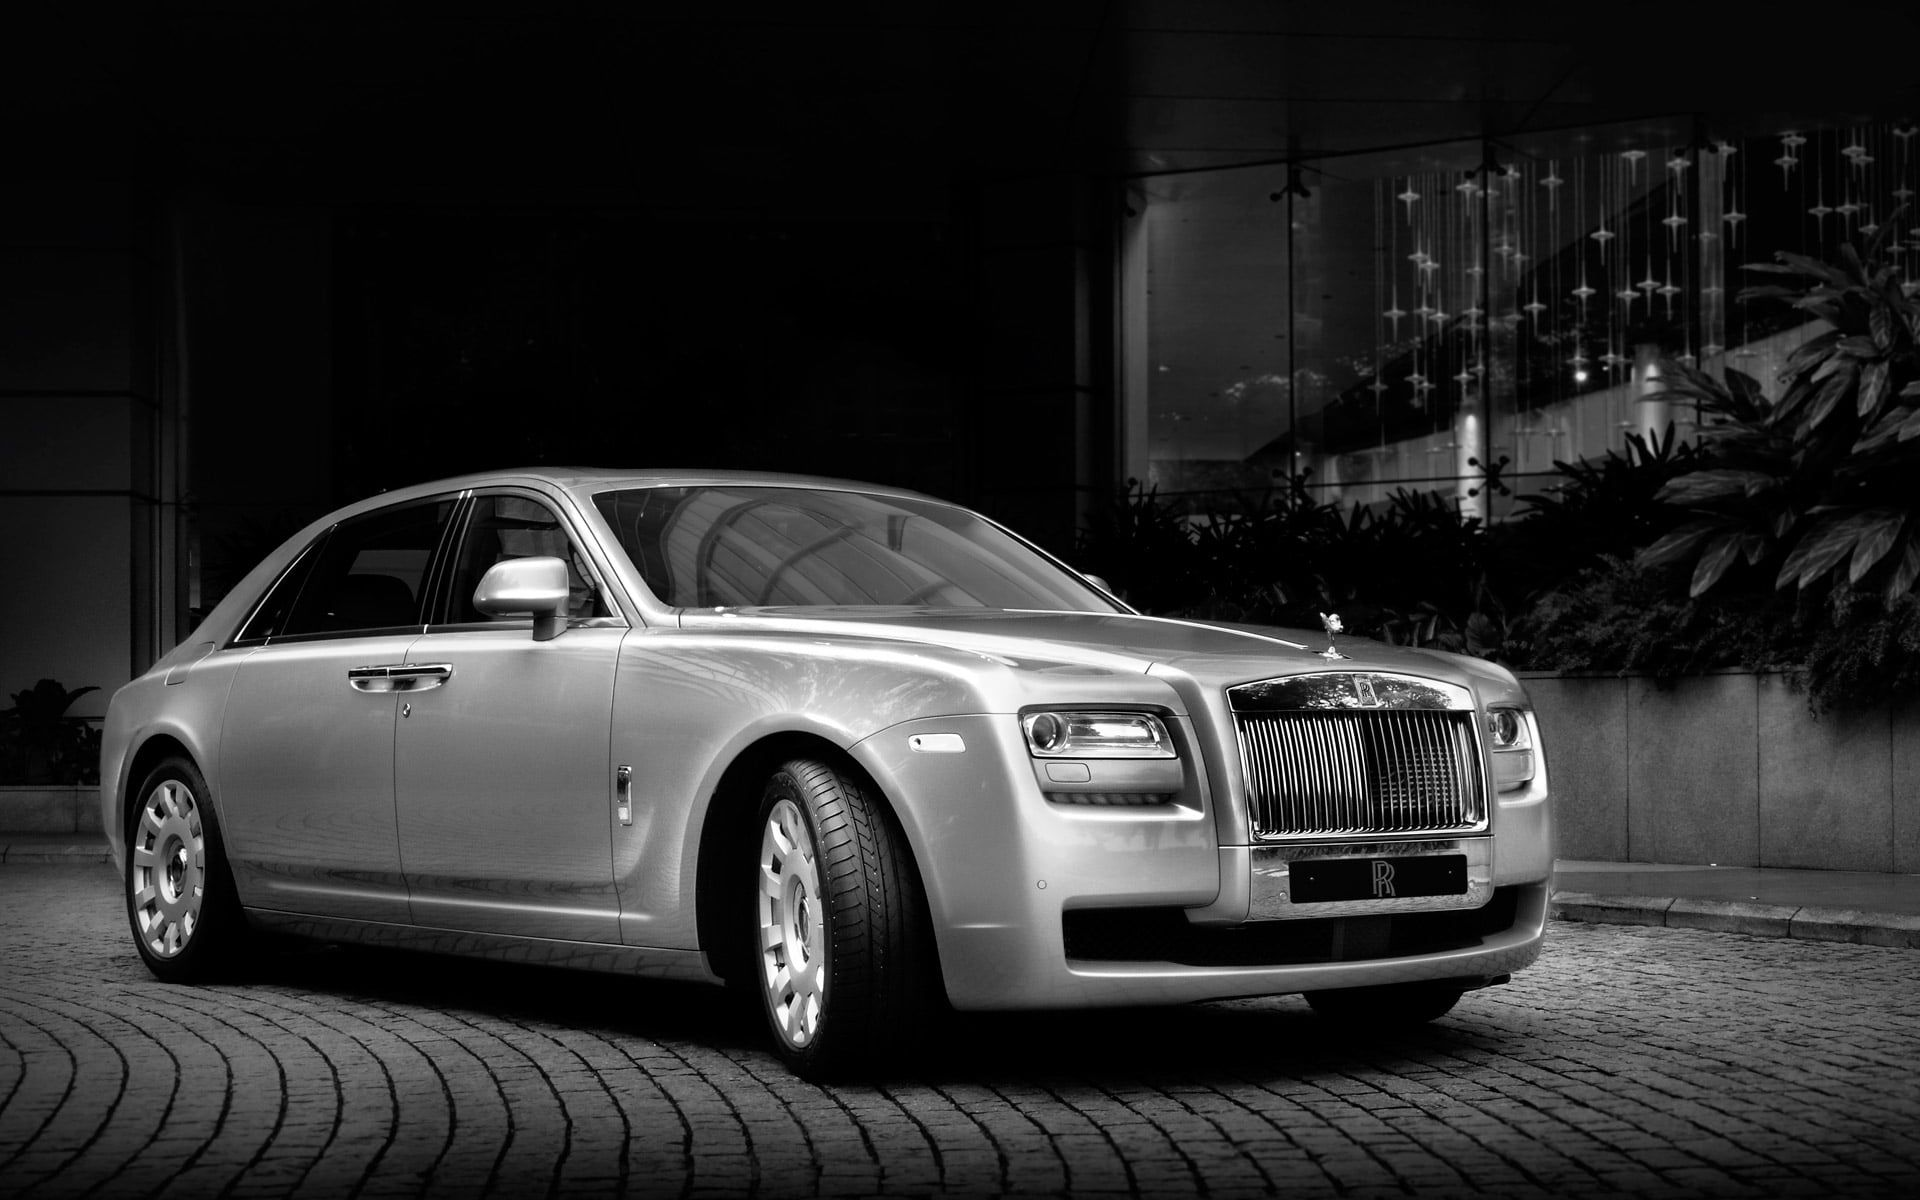 Grayscale Photo Of Mercedes Benz Sedan Rolls Royce Twilight Ghost Sedan The Front Rolls Royce Gost 1080p Wallpape In 2020 Mercedes Benz Sedan Rolls Royce Sedan